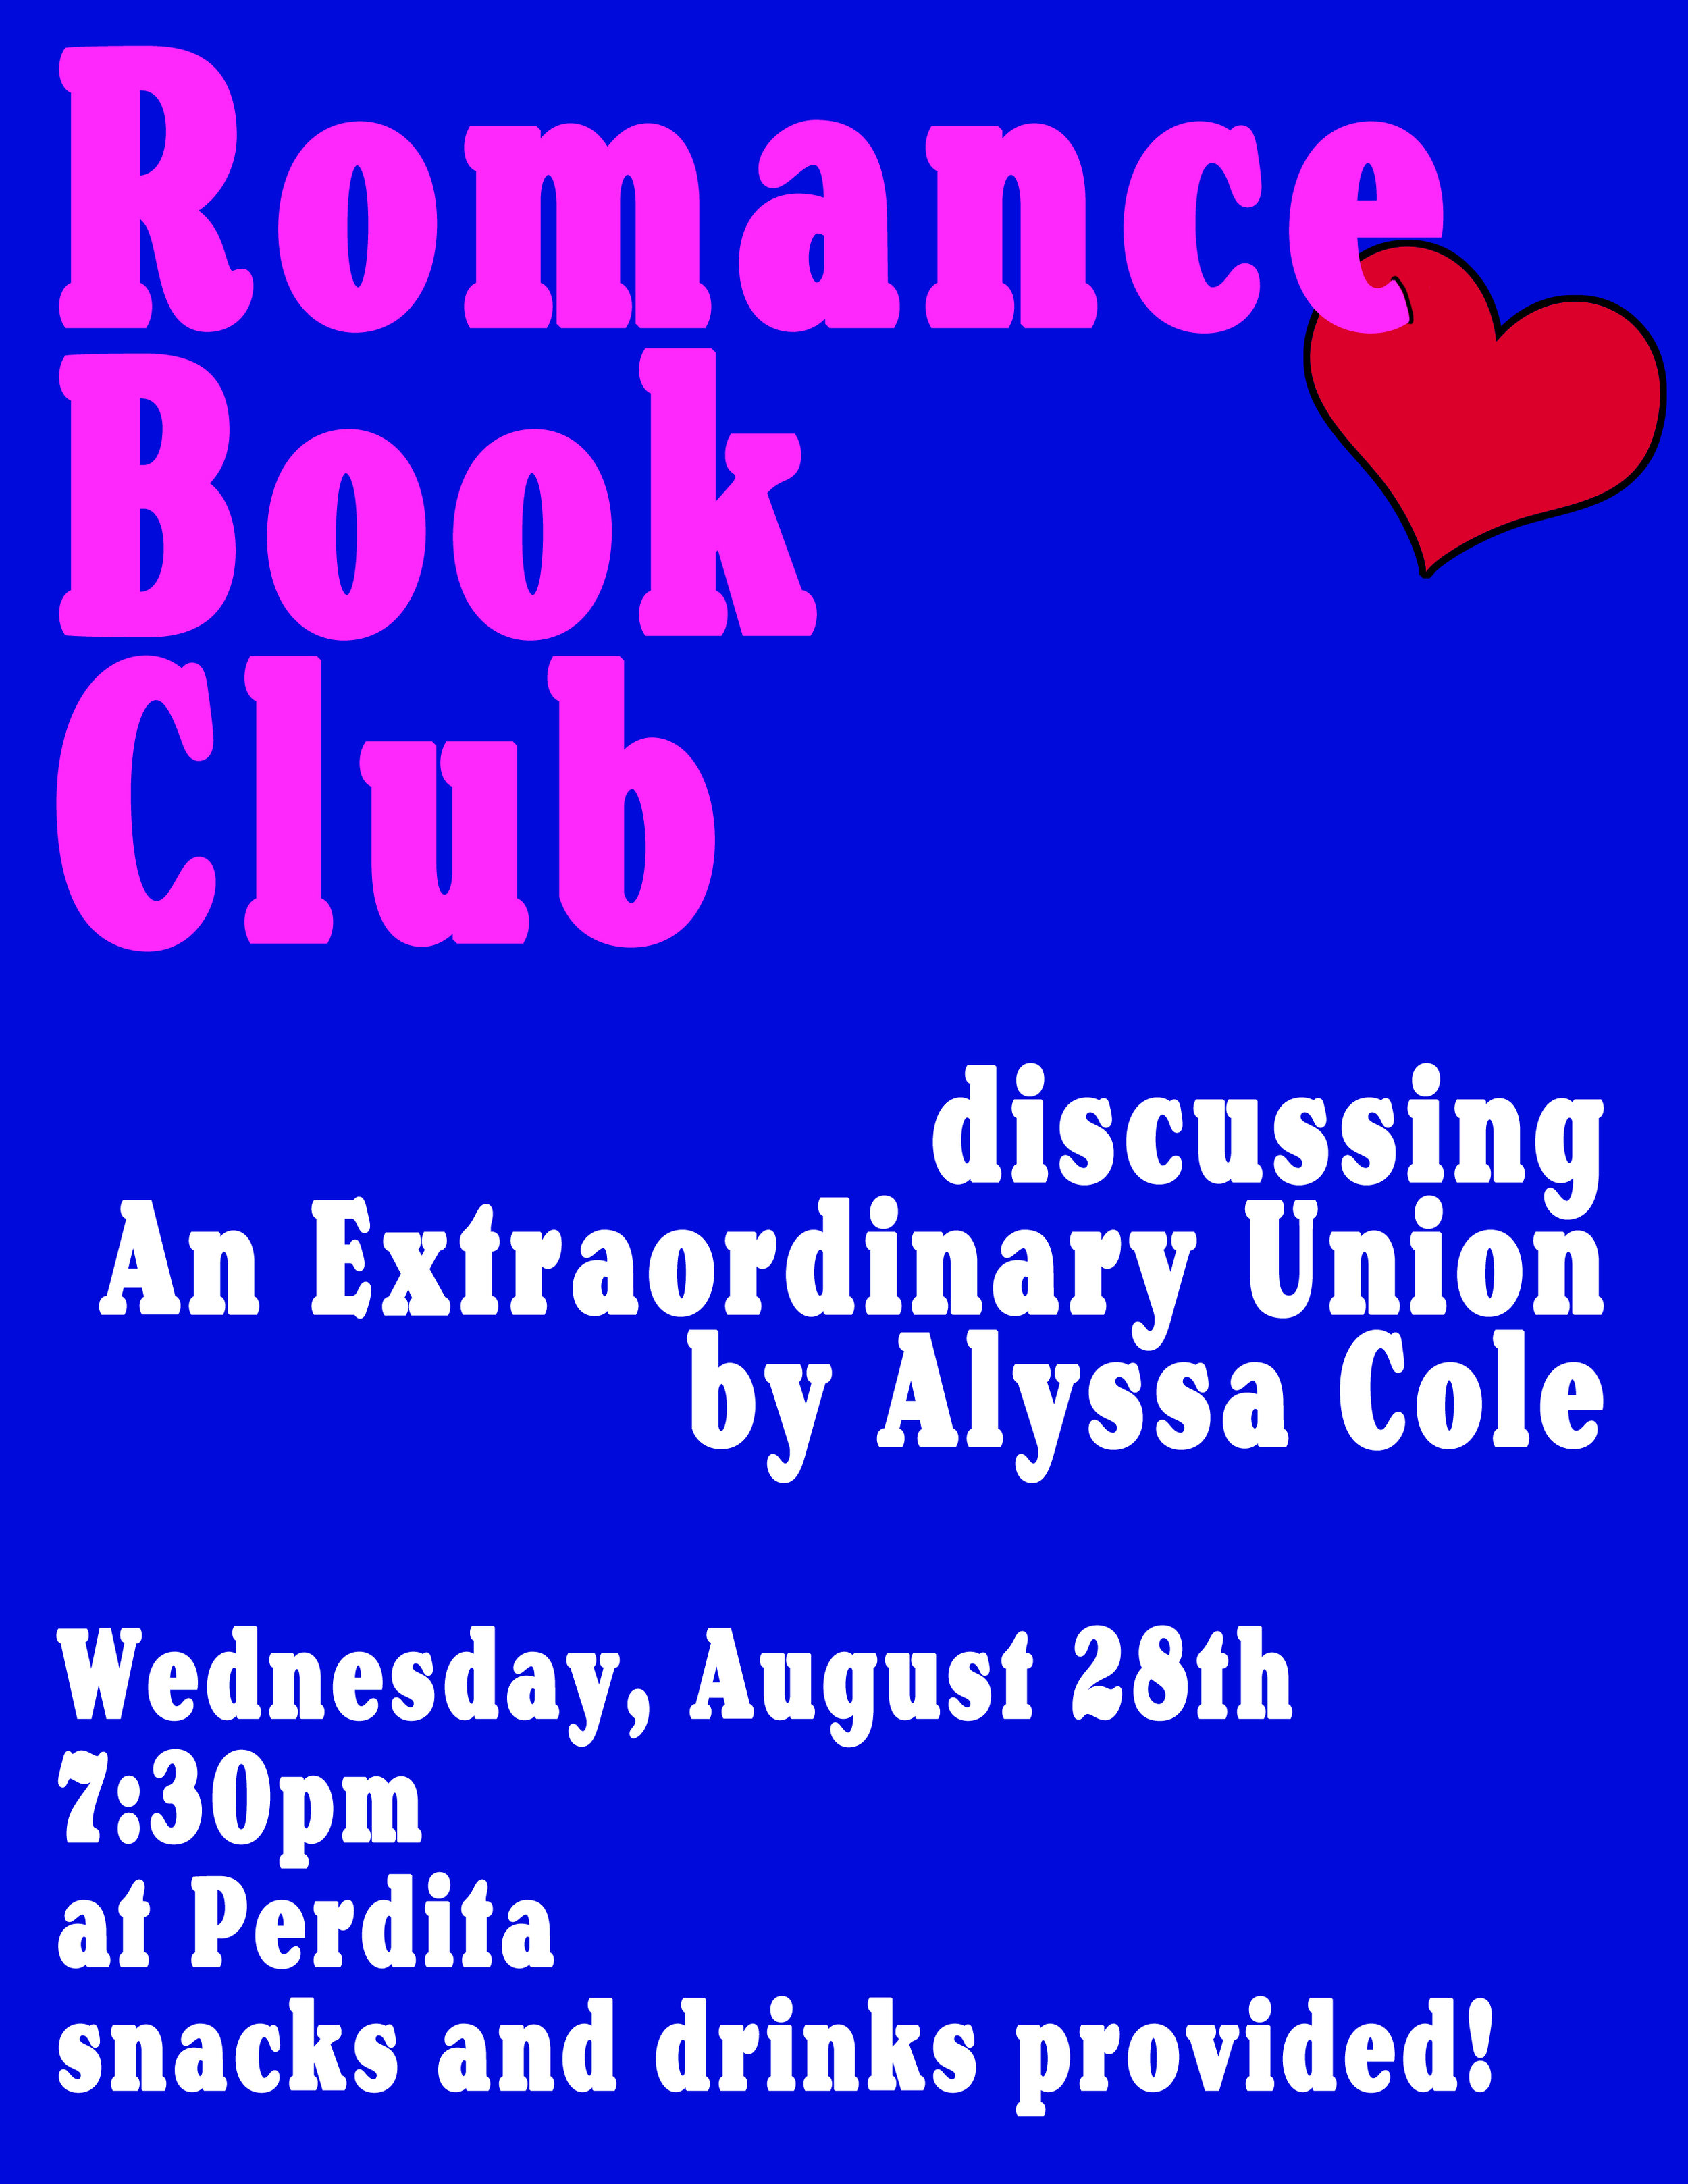 romance book club an extraordinary union august 2019.jpg